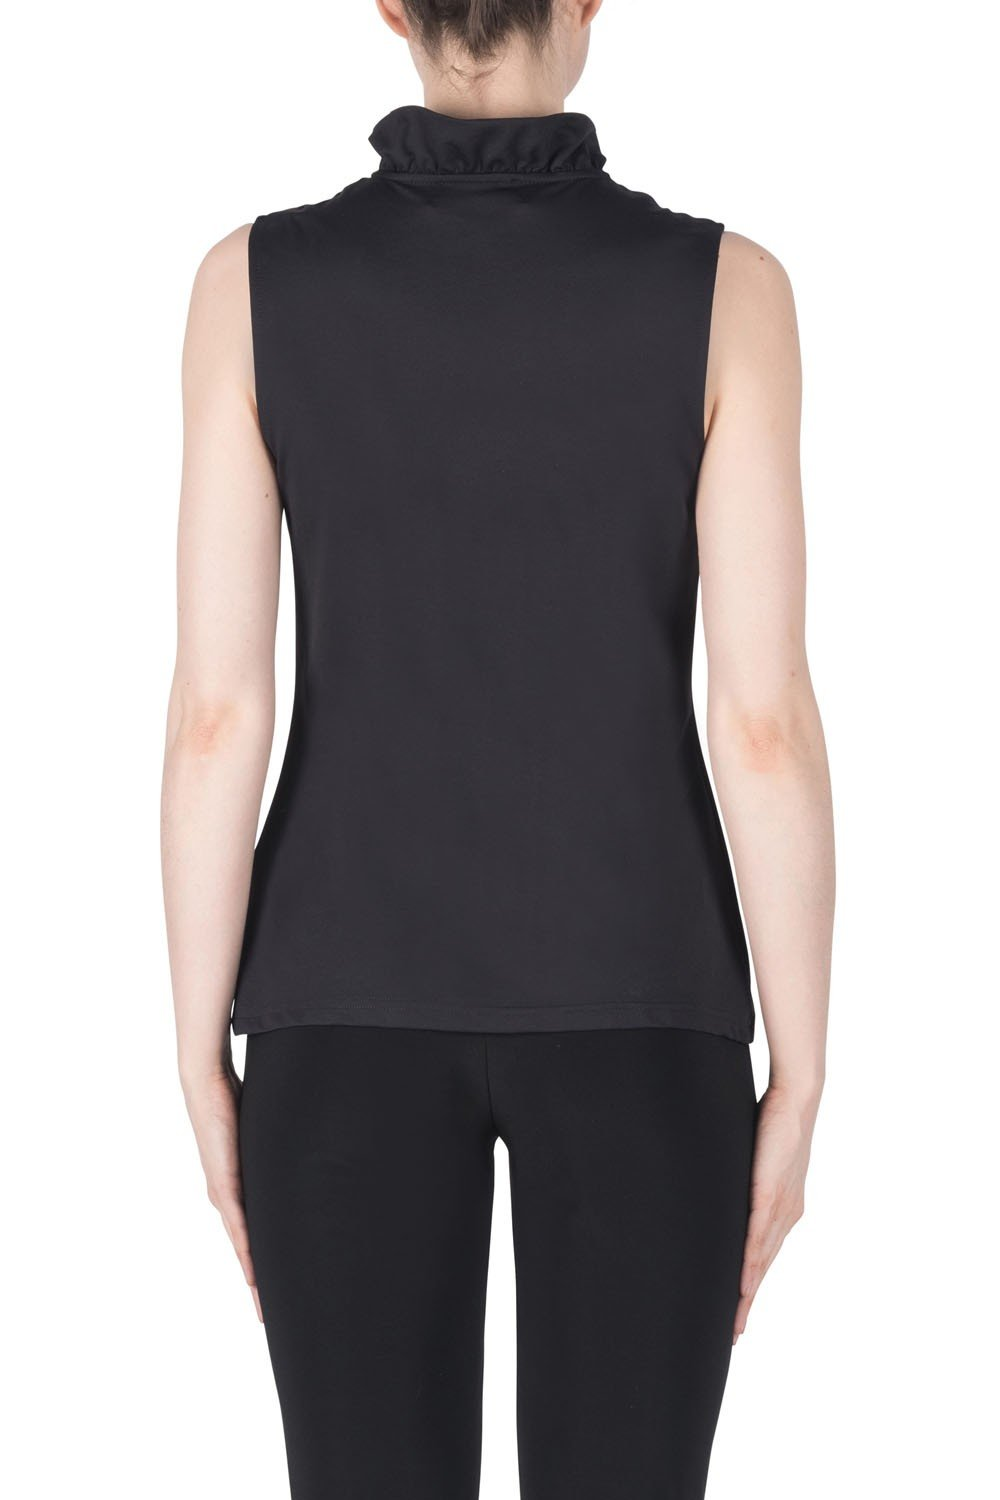 Image of Joseph Ribkoff Top Style 183400 Black Best Price On Sale